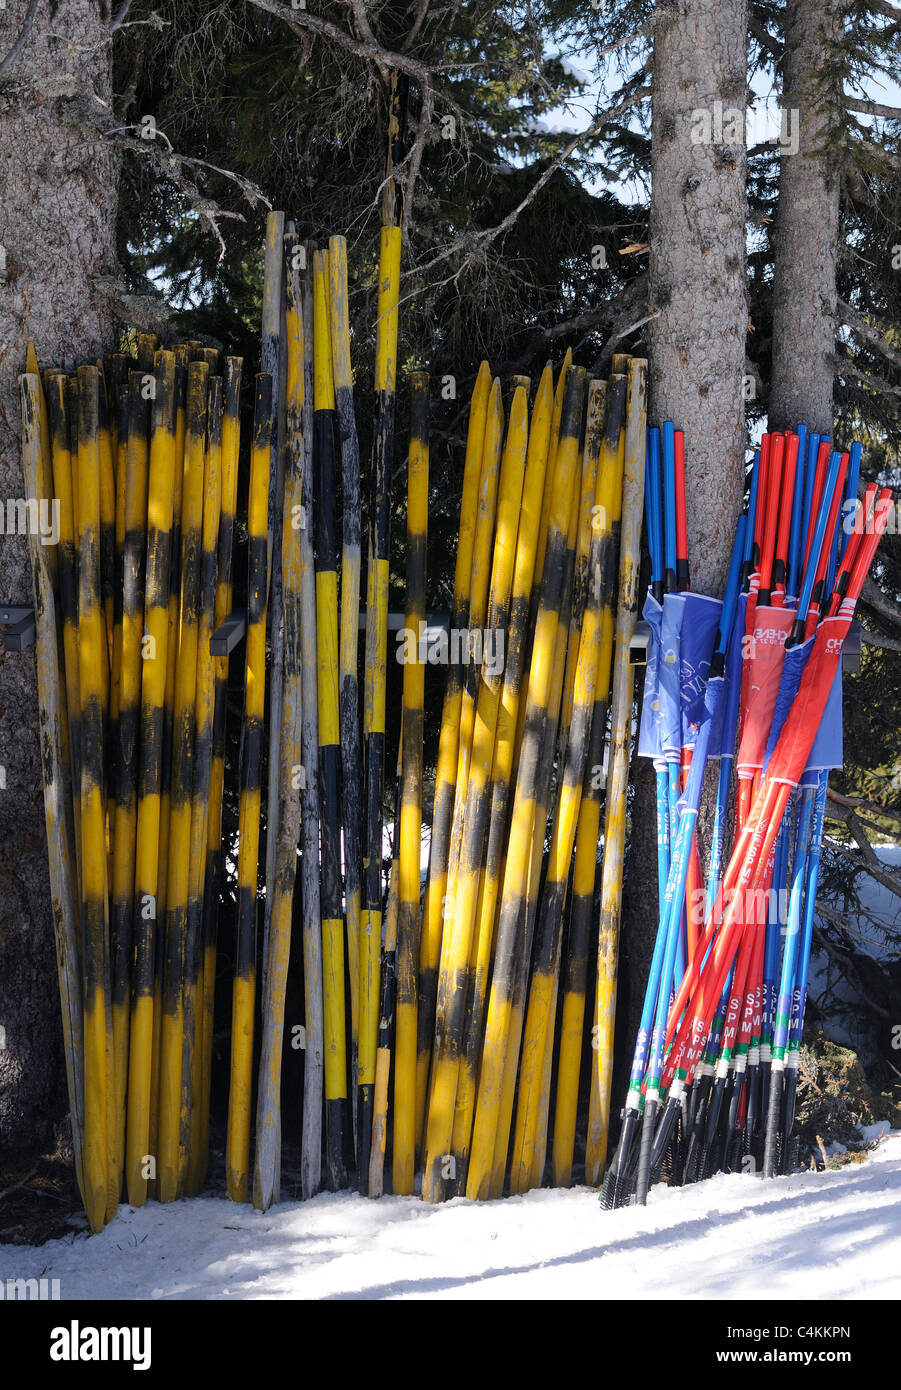 Yellow and black poles stacked ready for use on the piste. - Stock Image